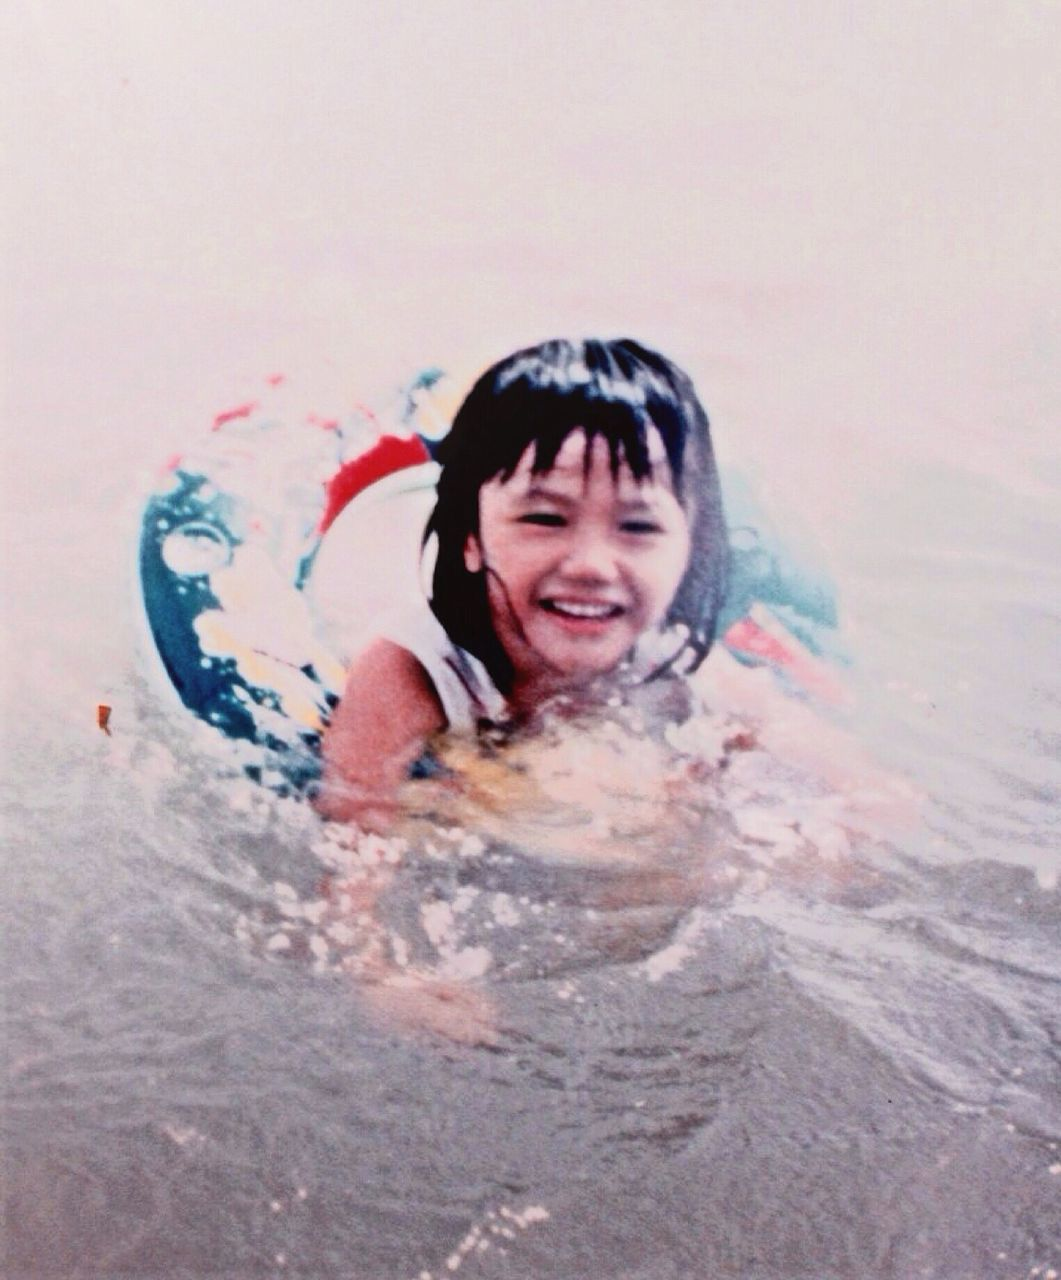 Close-up portrait of a girl swimming in water